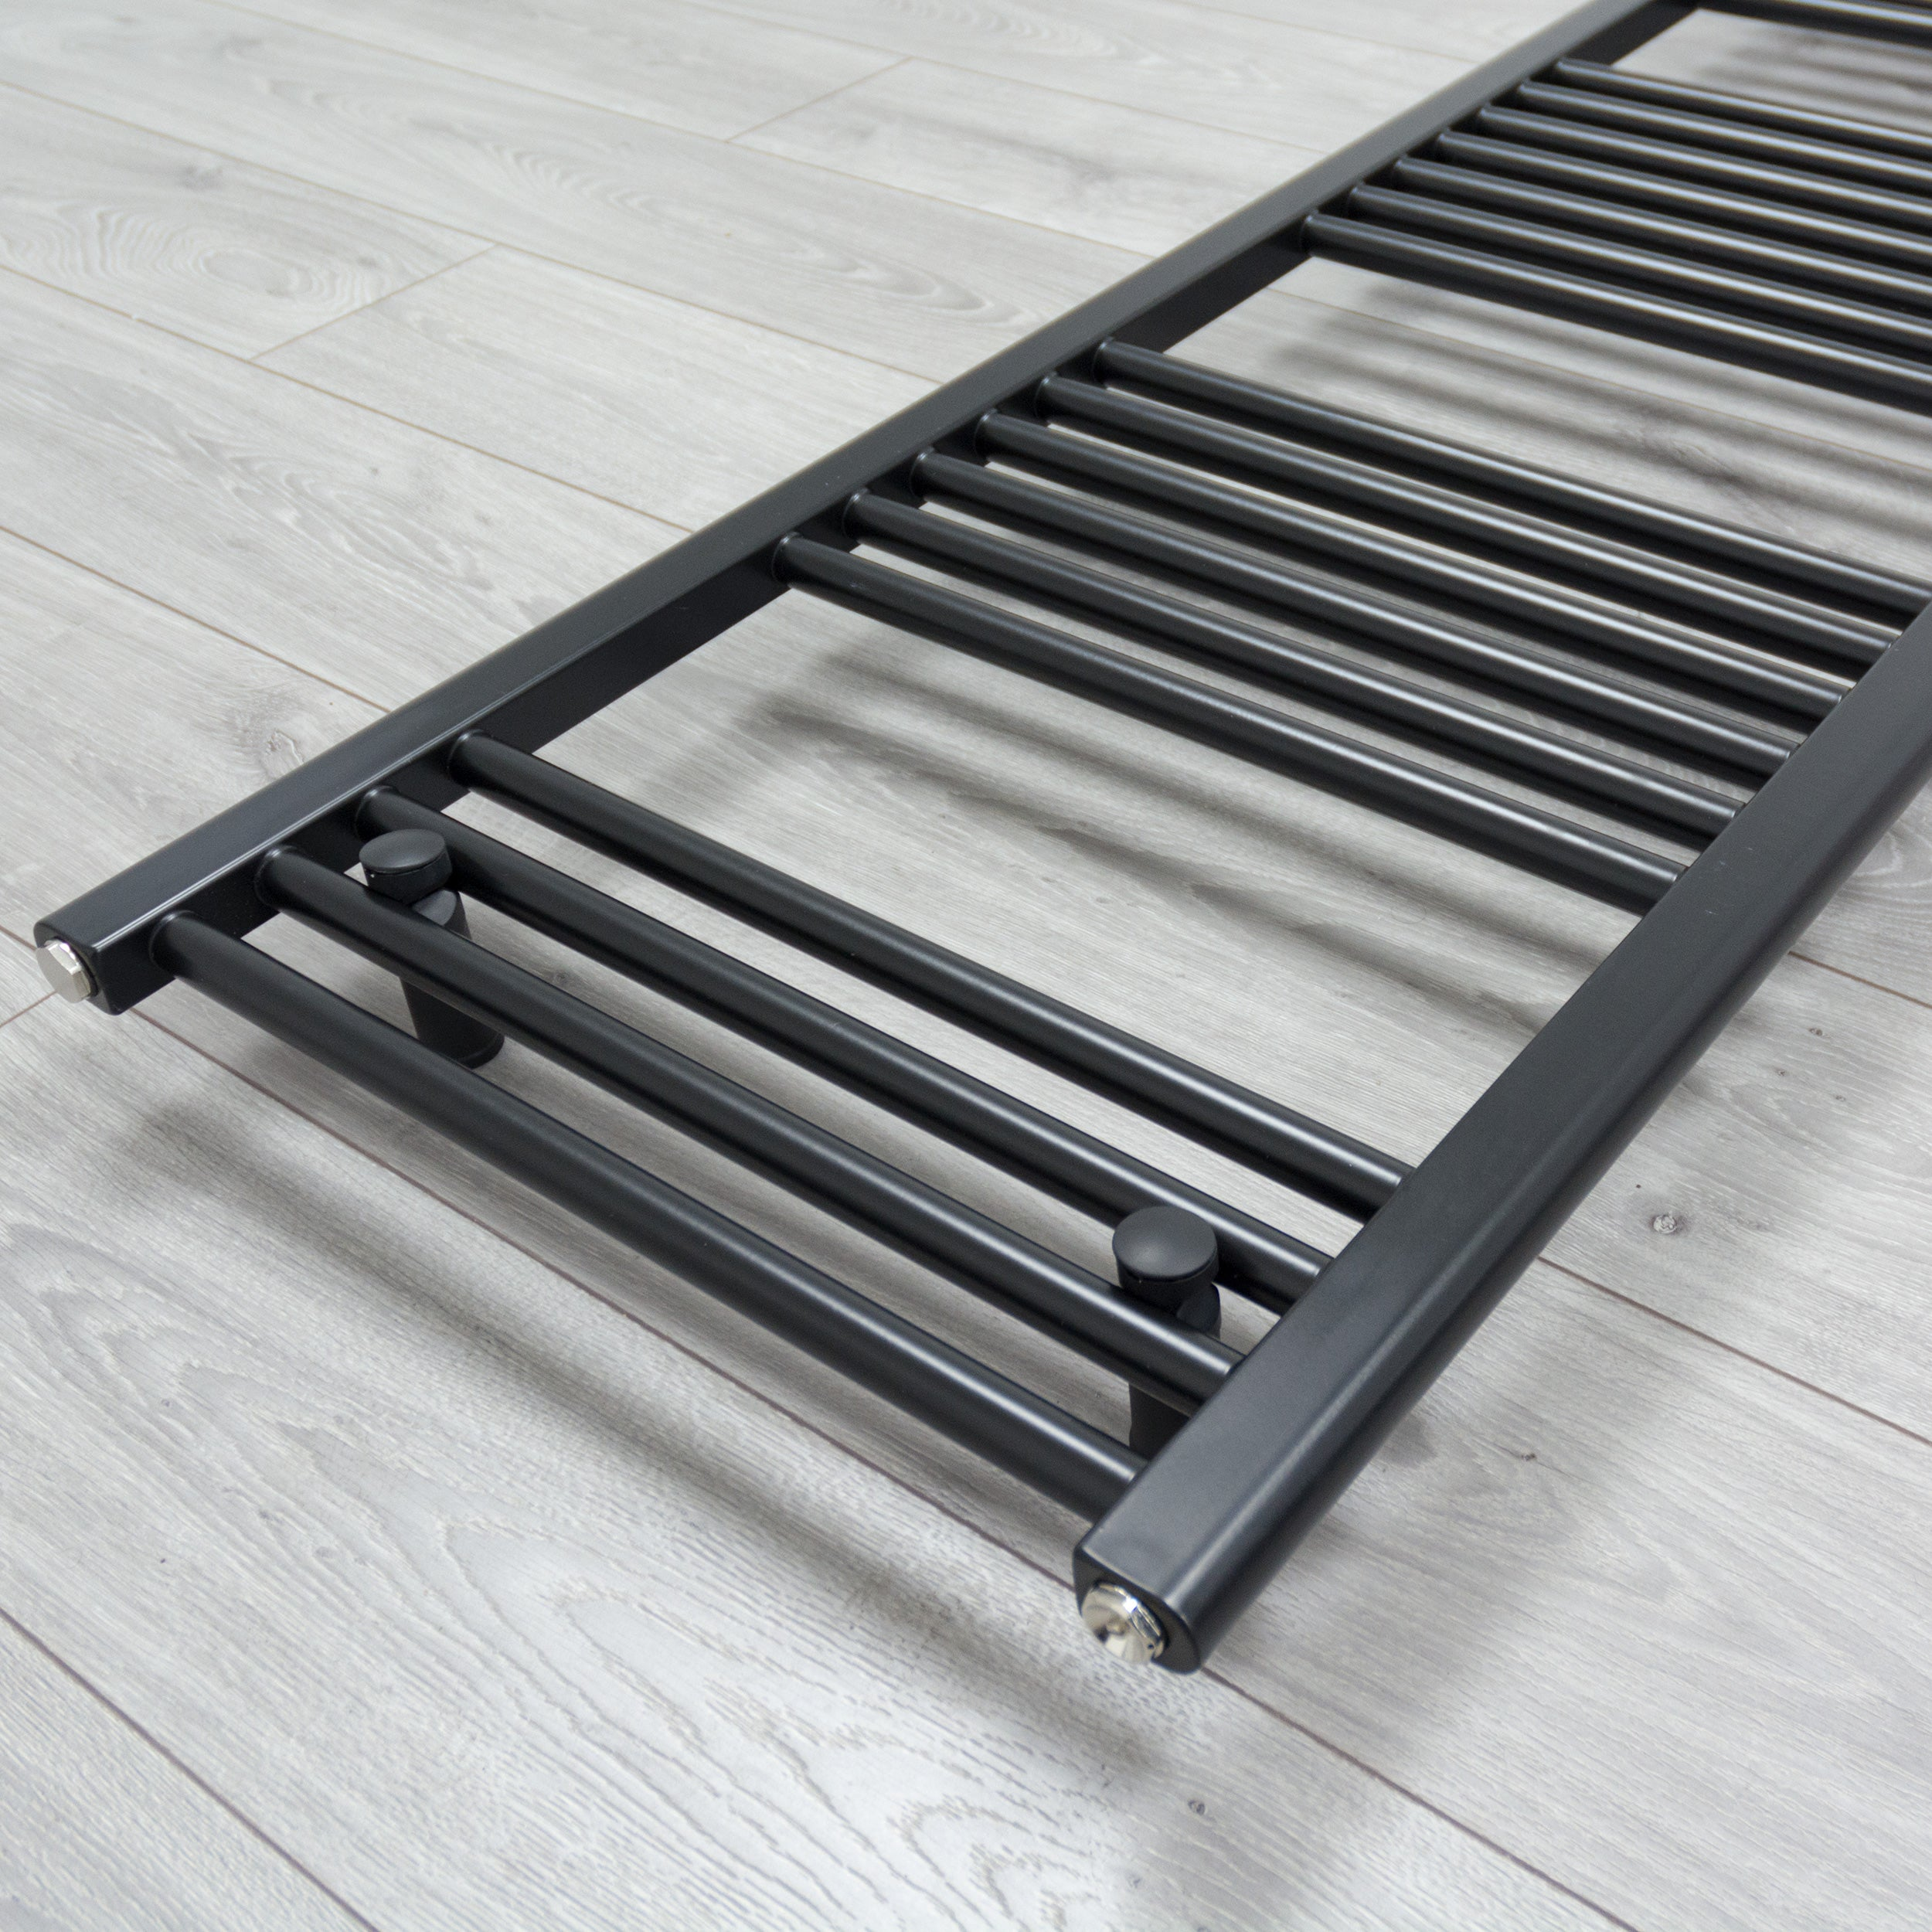 400mm x 600mm Black Heated Towel Rail Radiator Close Up Image